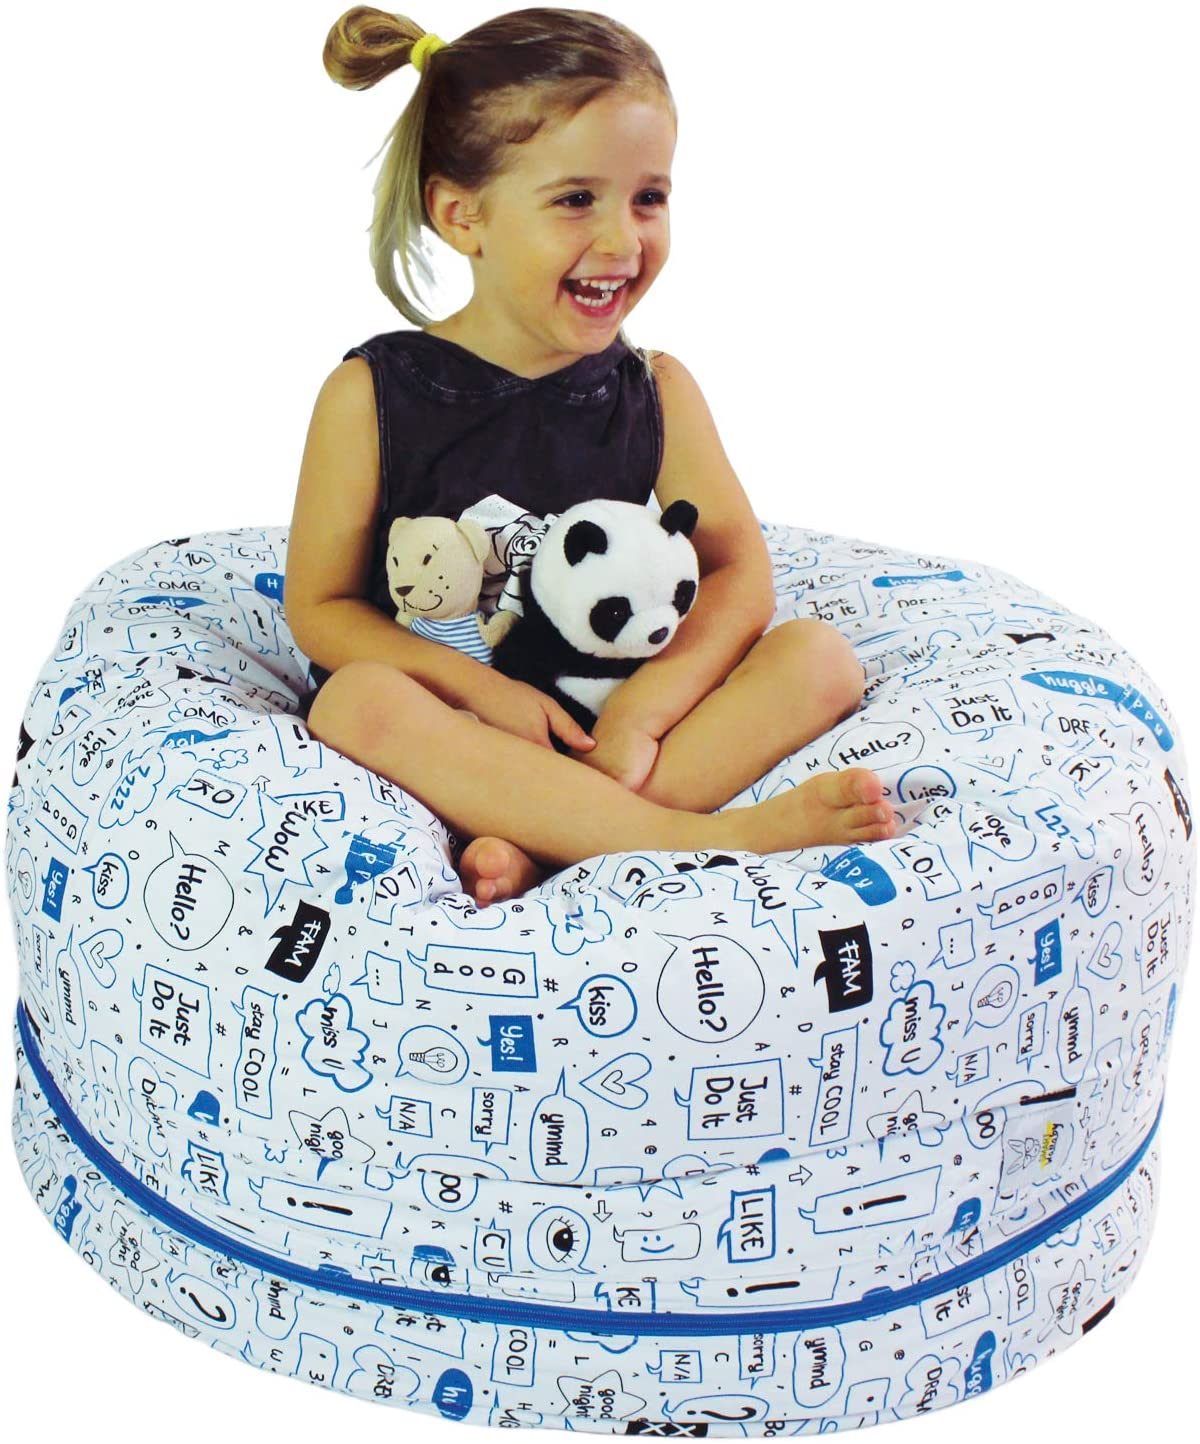 "2 Sizes in 1 Large Bean bag Stuffed Animal Storage | XL Jumbo Ottoman for Soft Toys, Plush Toys | Giant Pouf Organizer for Linens, Quilts, Pillows | 300 L. / 80 Gal. | 42"" (Talk to Me)"